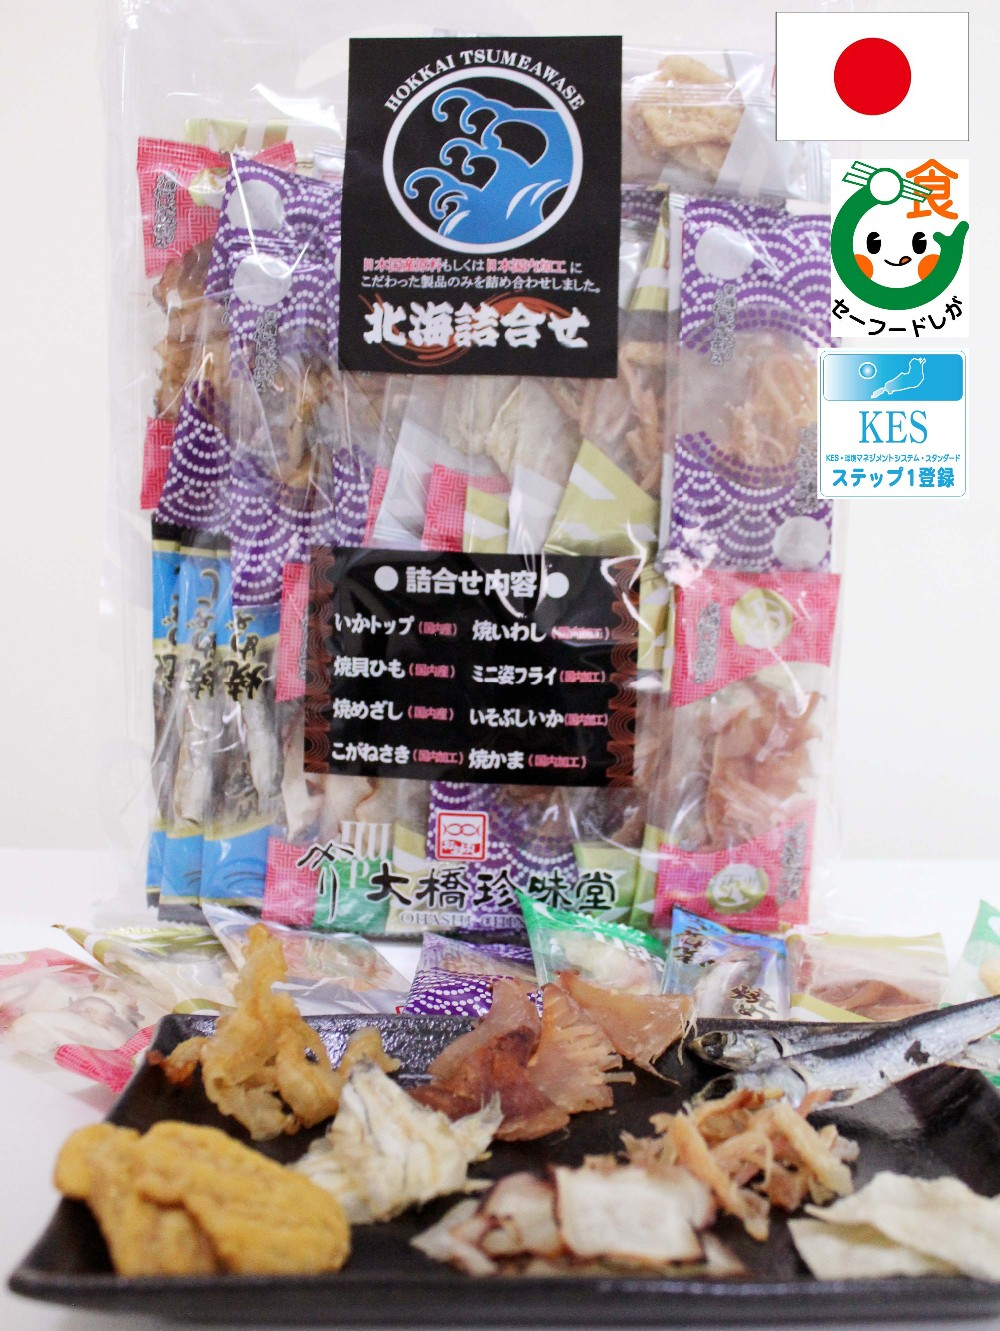 Hand-packed and Aromatic used fish tanks for sale with ingredients only from Japan.